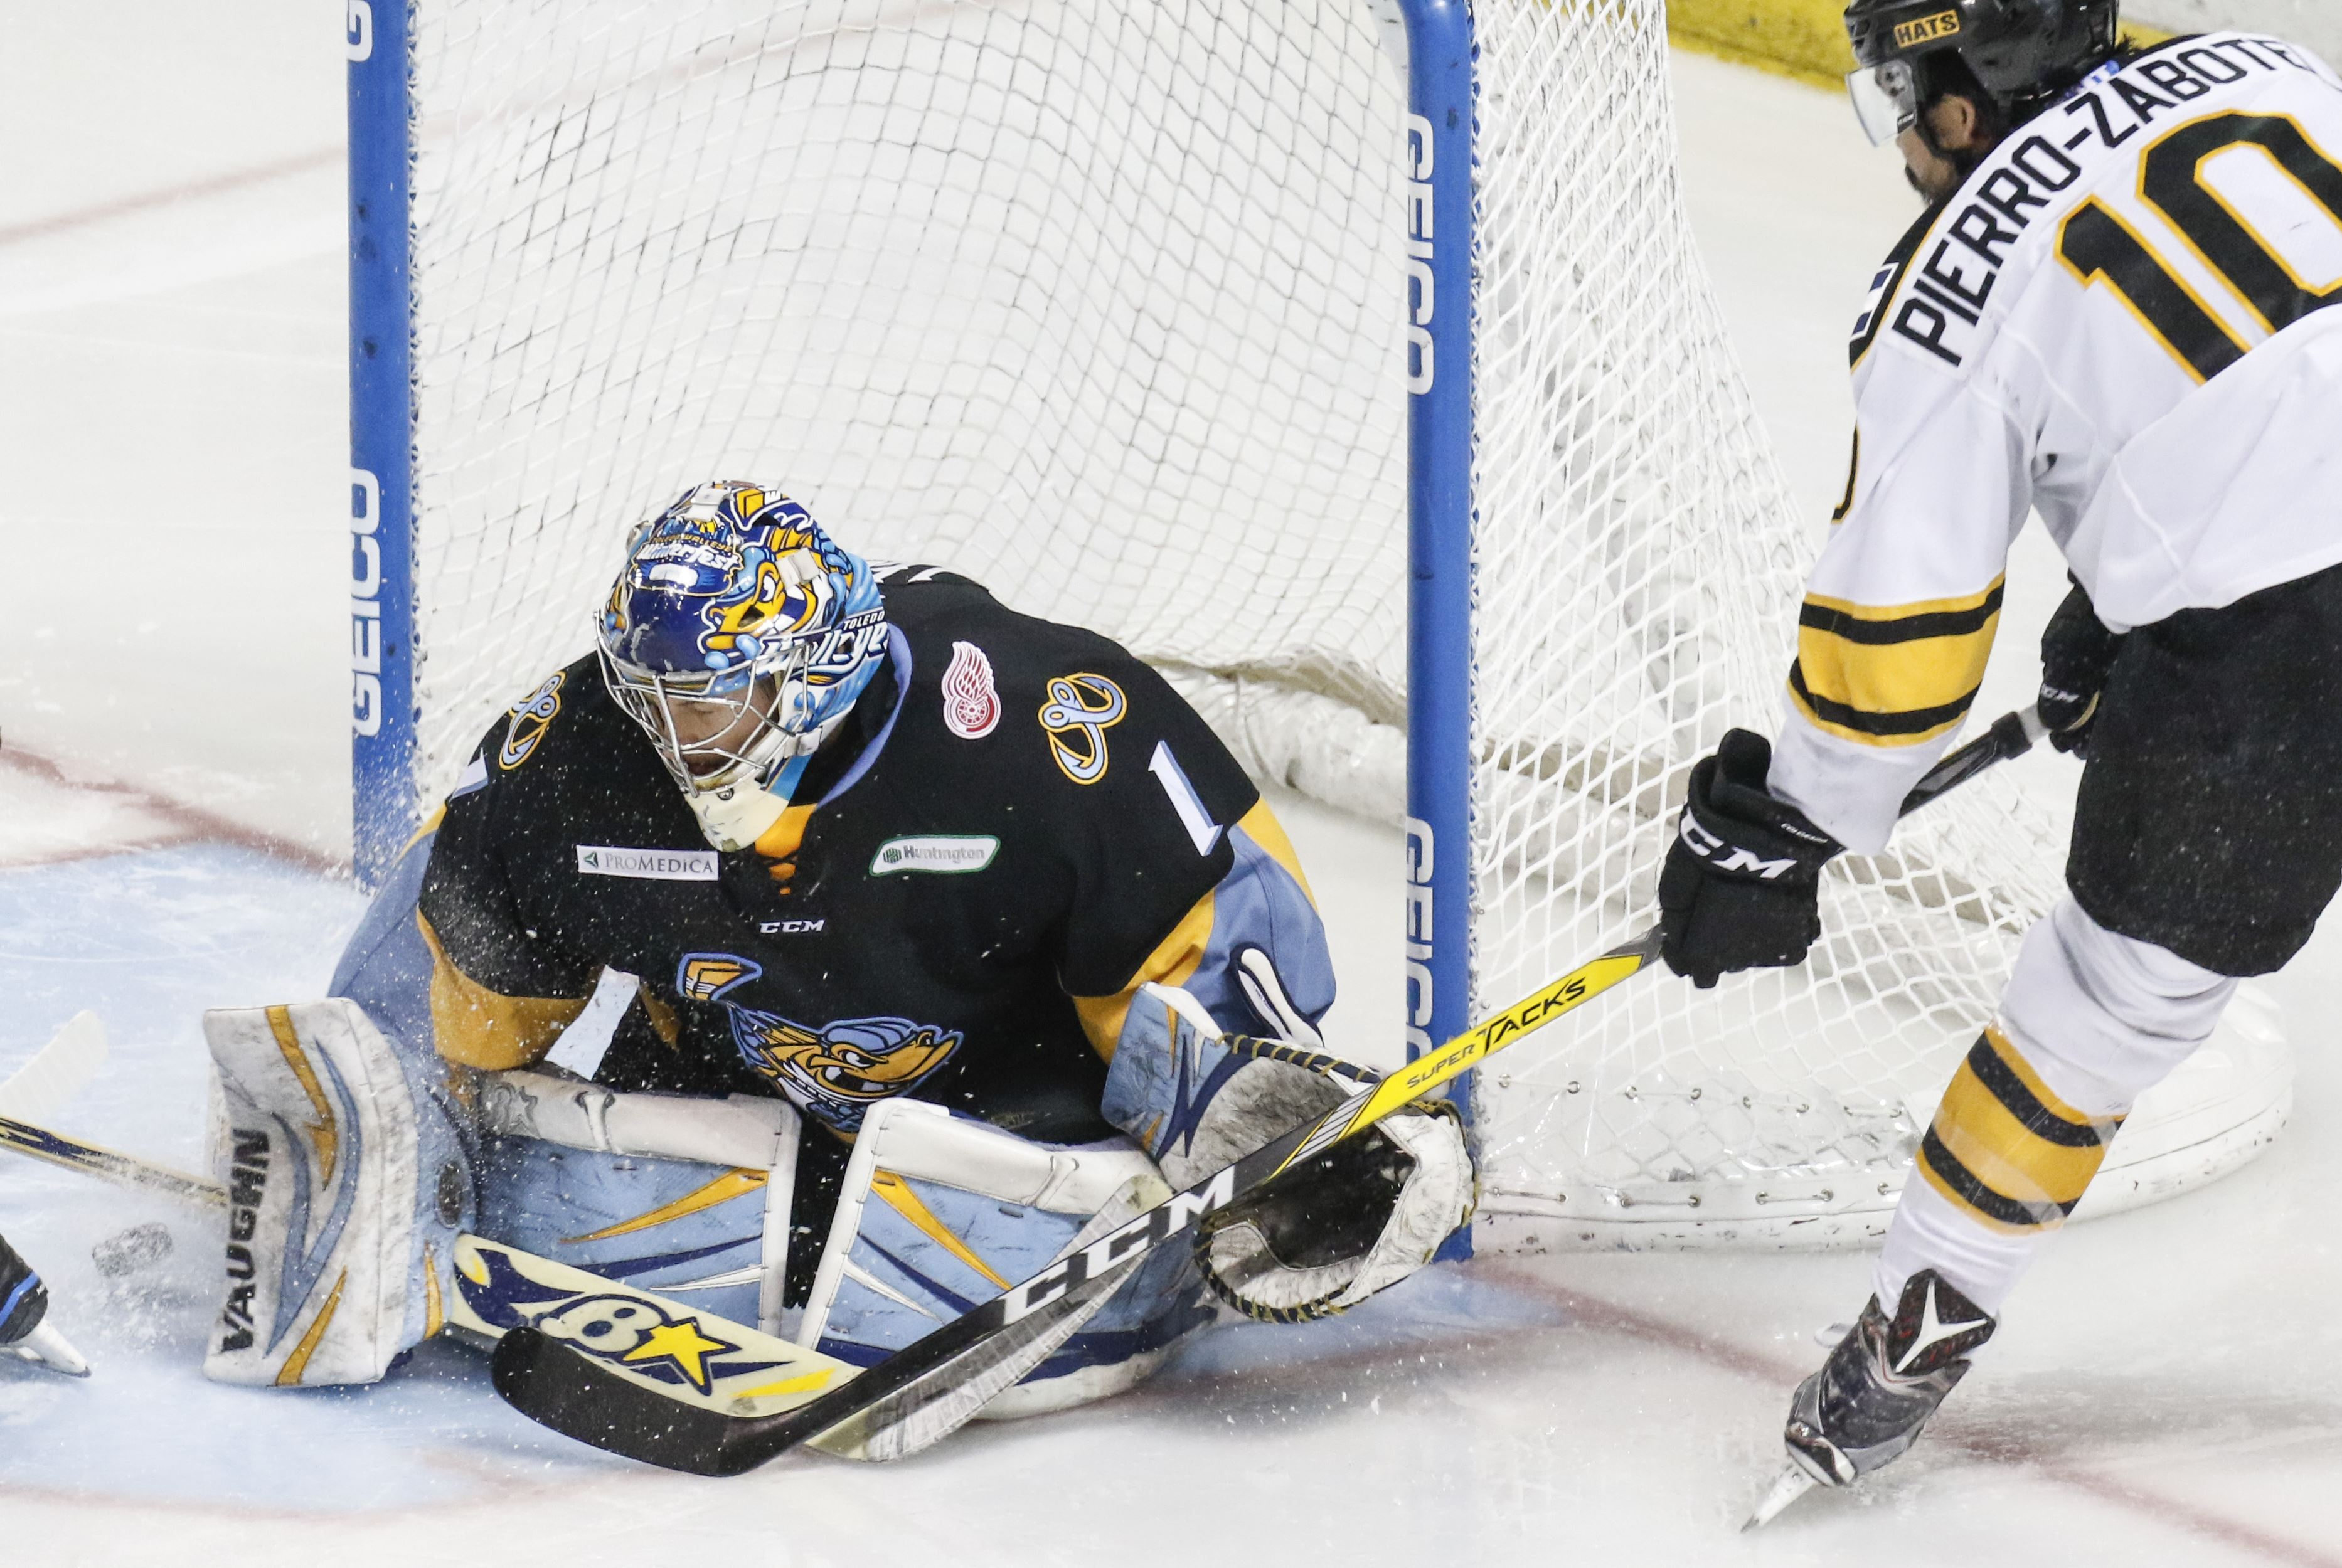 ECHL: Toledo's Lerg Decides To Go Back Overseas Next Season - To Play For France's Gap Rapaces